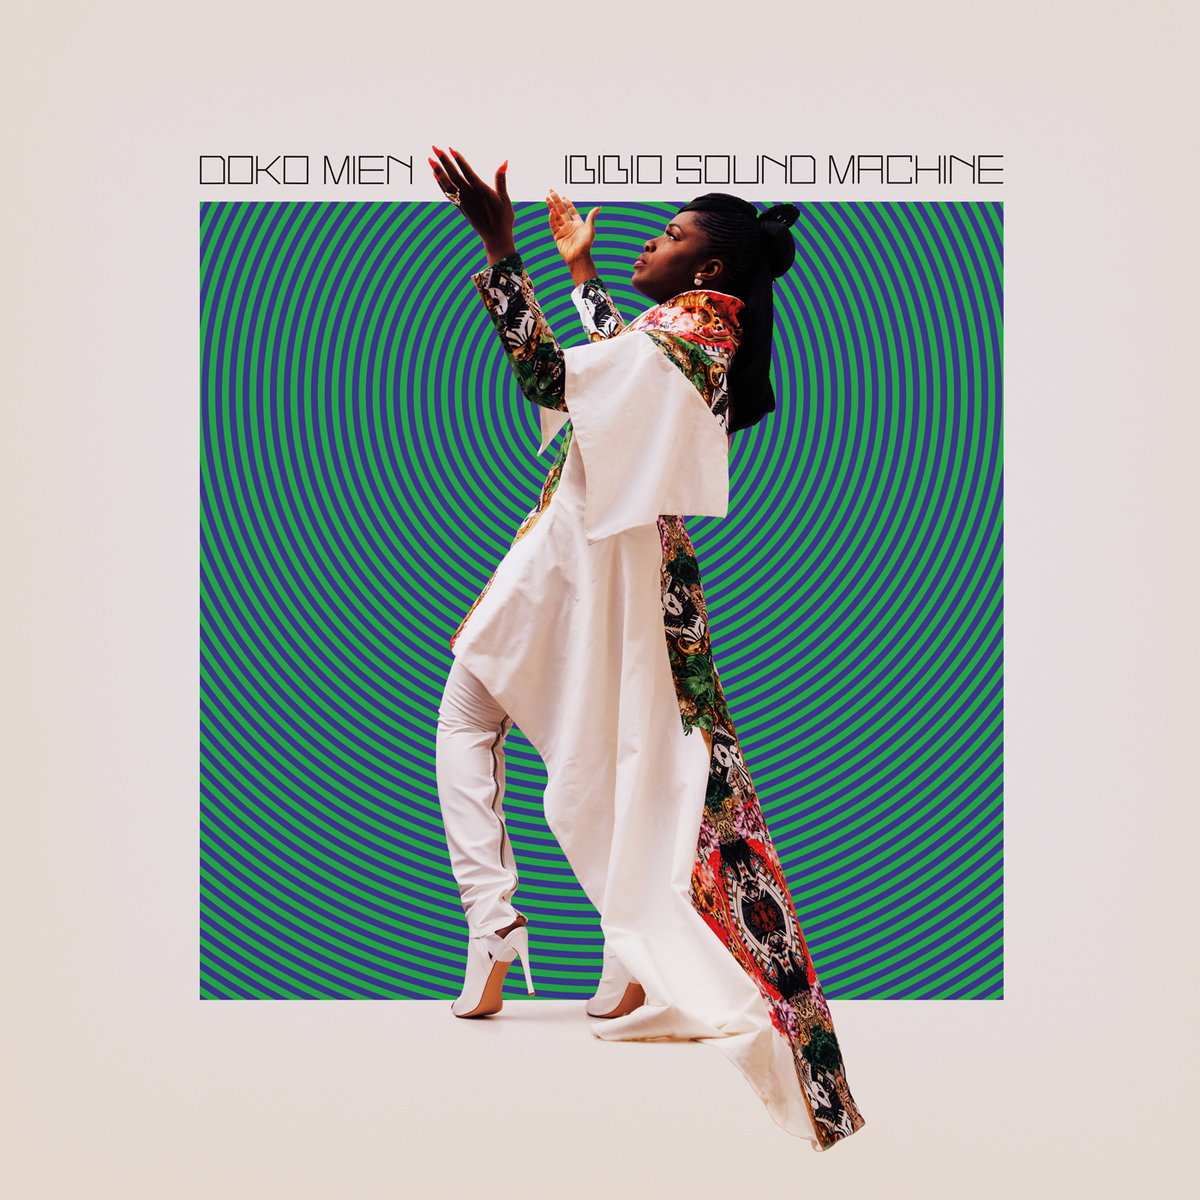 Image result for ibibio sound machine - doko mien